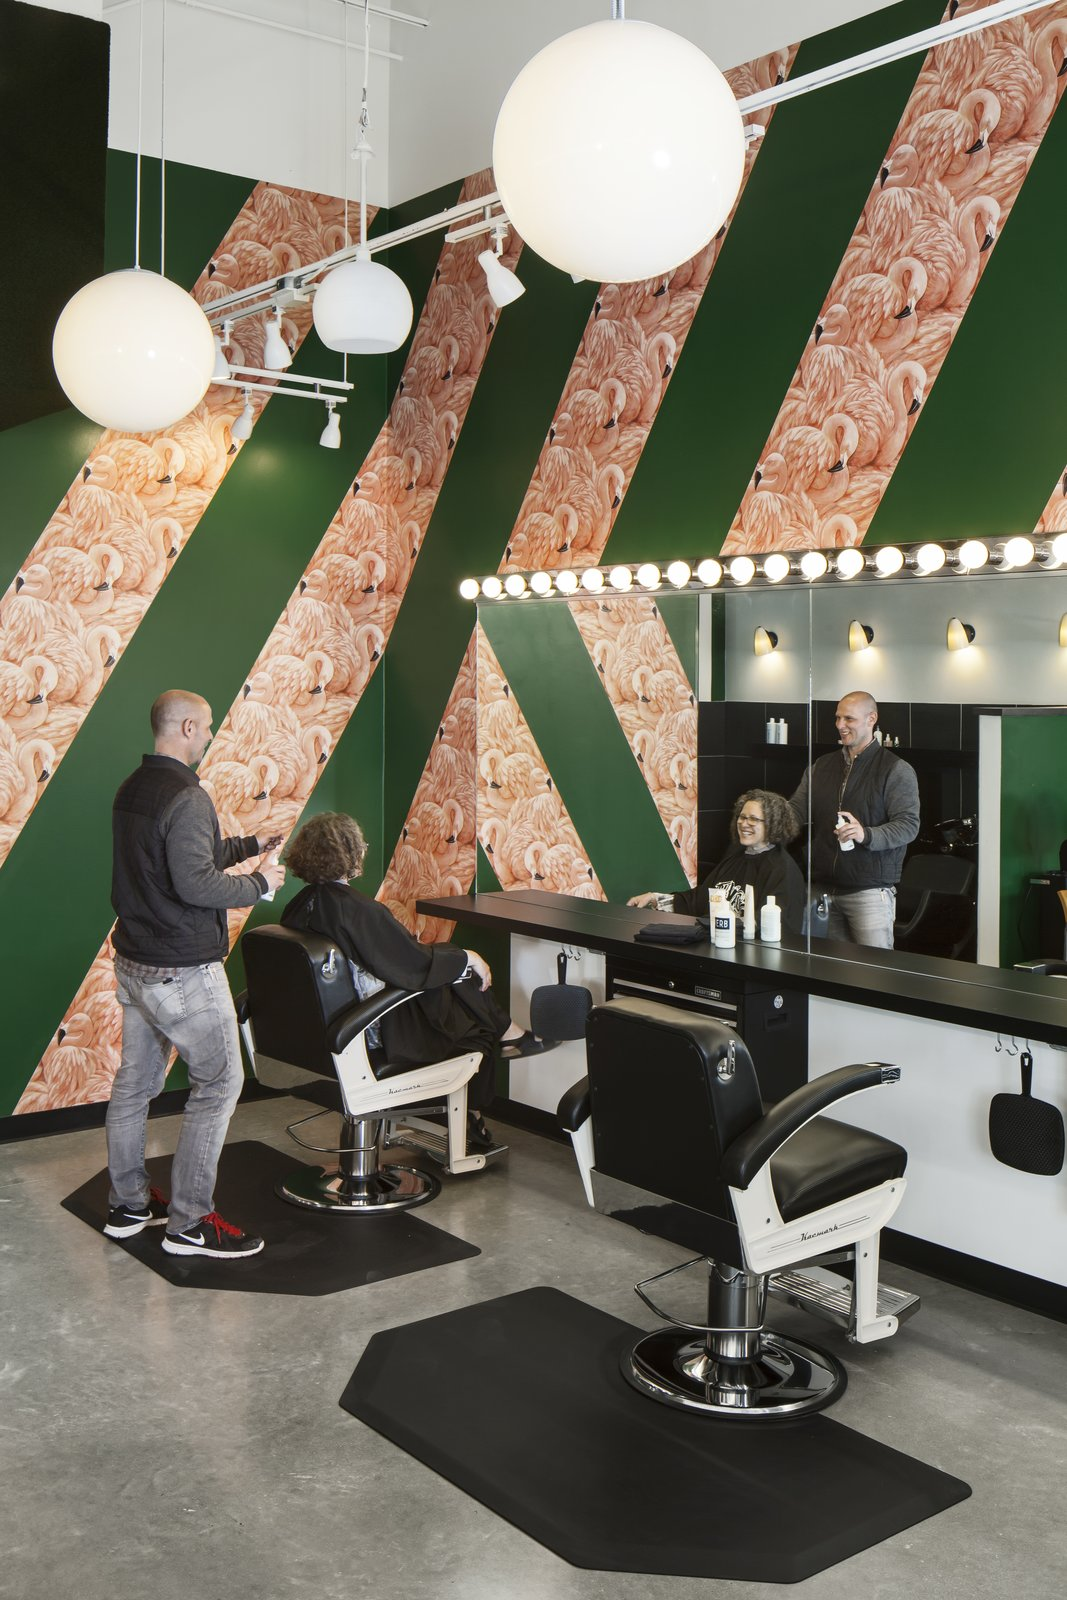 Birds Barbershop offers its employees competitive pay, health insurance, a retirement plan, and ongoing education. Employees get free haircuts and are promoted from within.  Photo 6 of 7 in A Barbershop That's a Cut Above